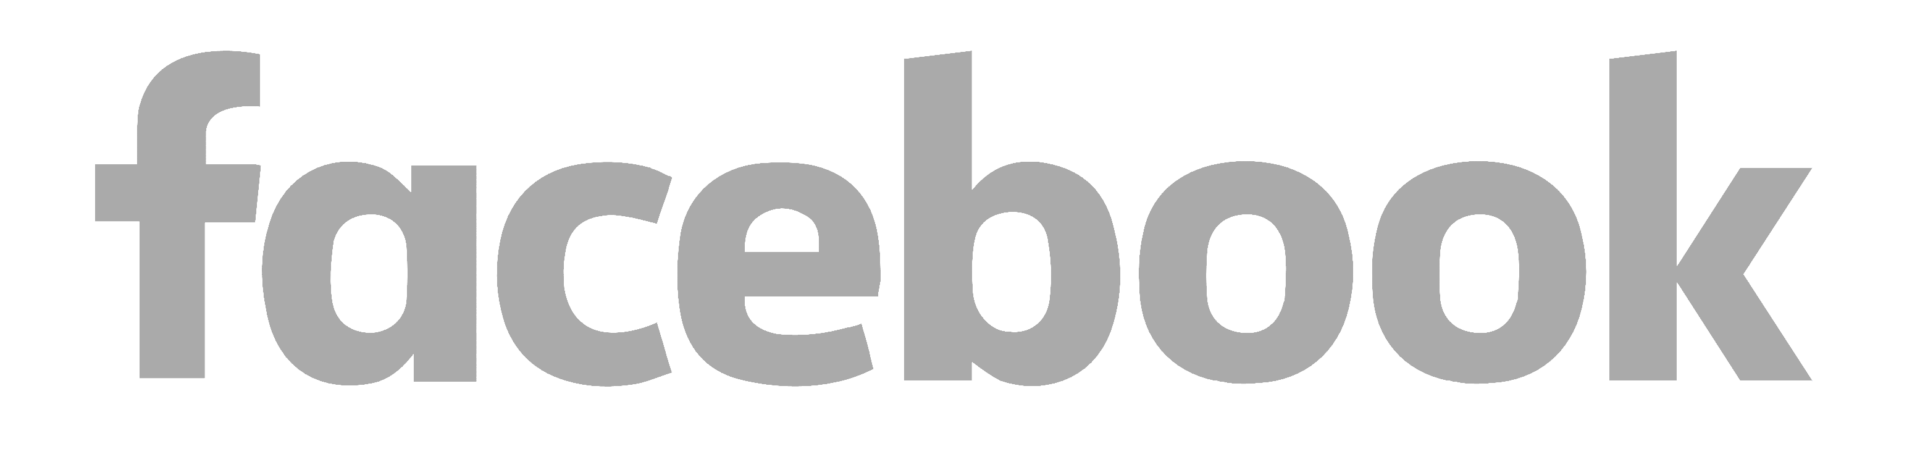 Facebook logotype in a gray font color